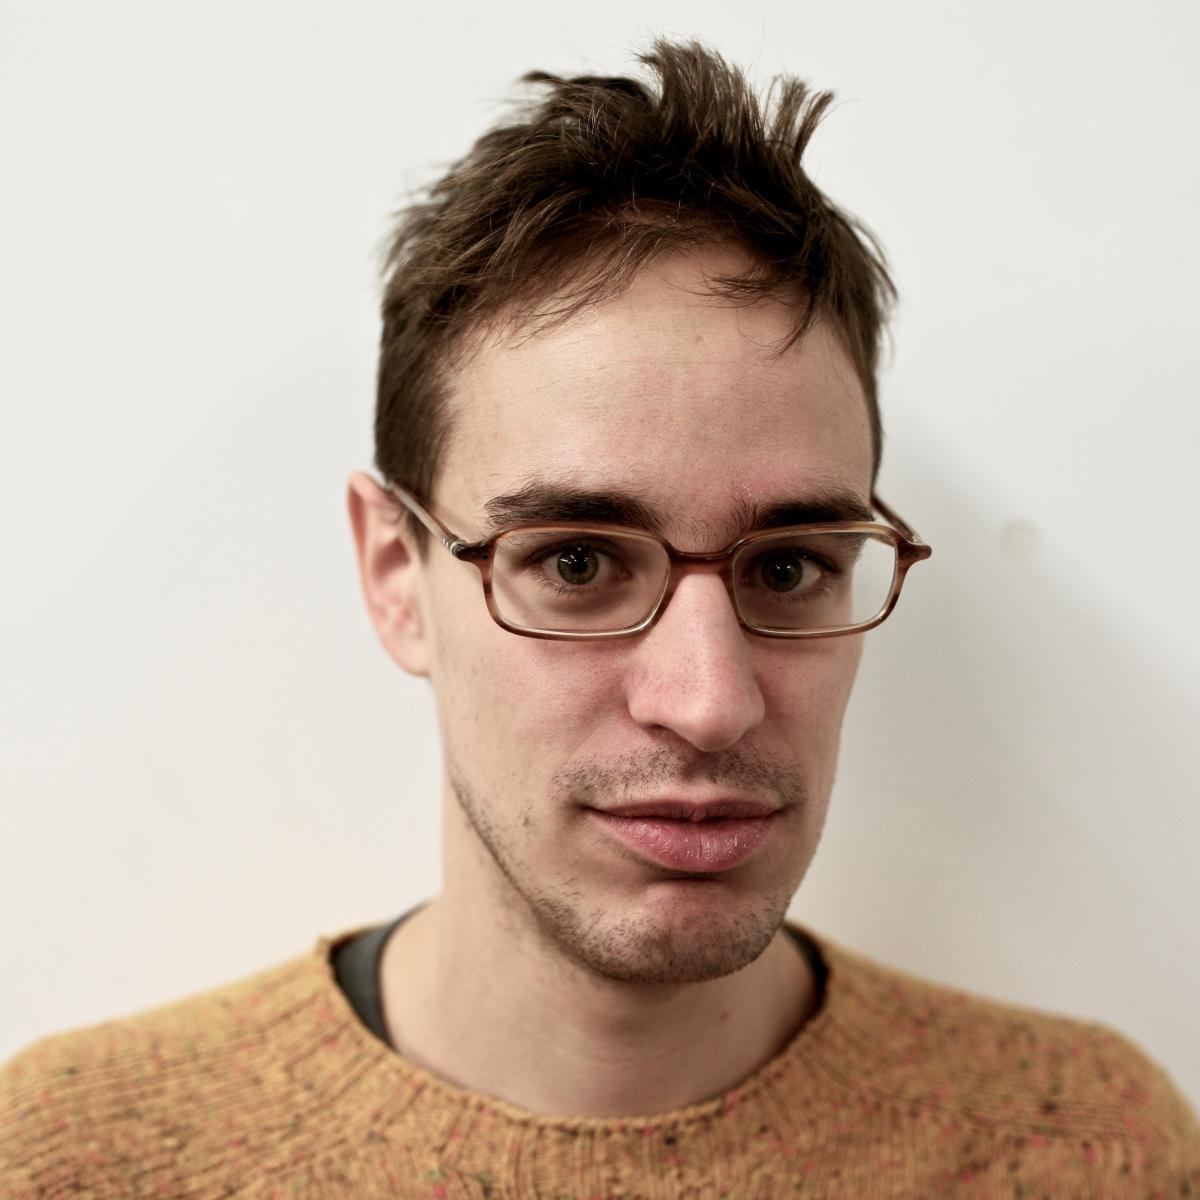 headshot of a man in a brown sweater with glasses